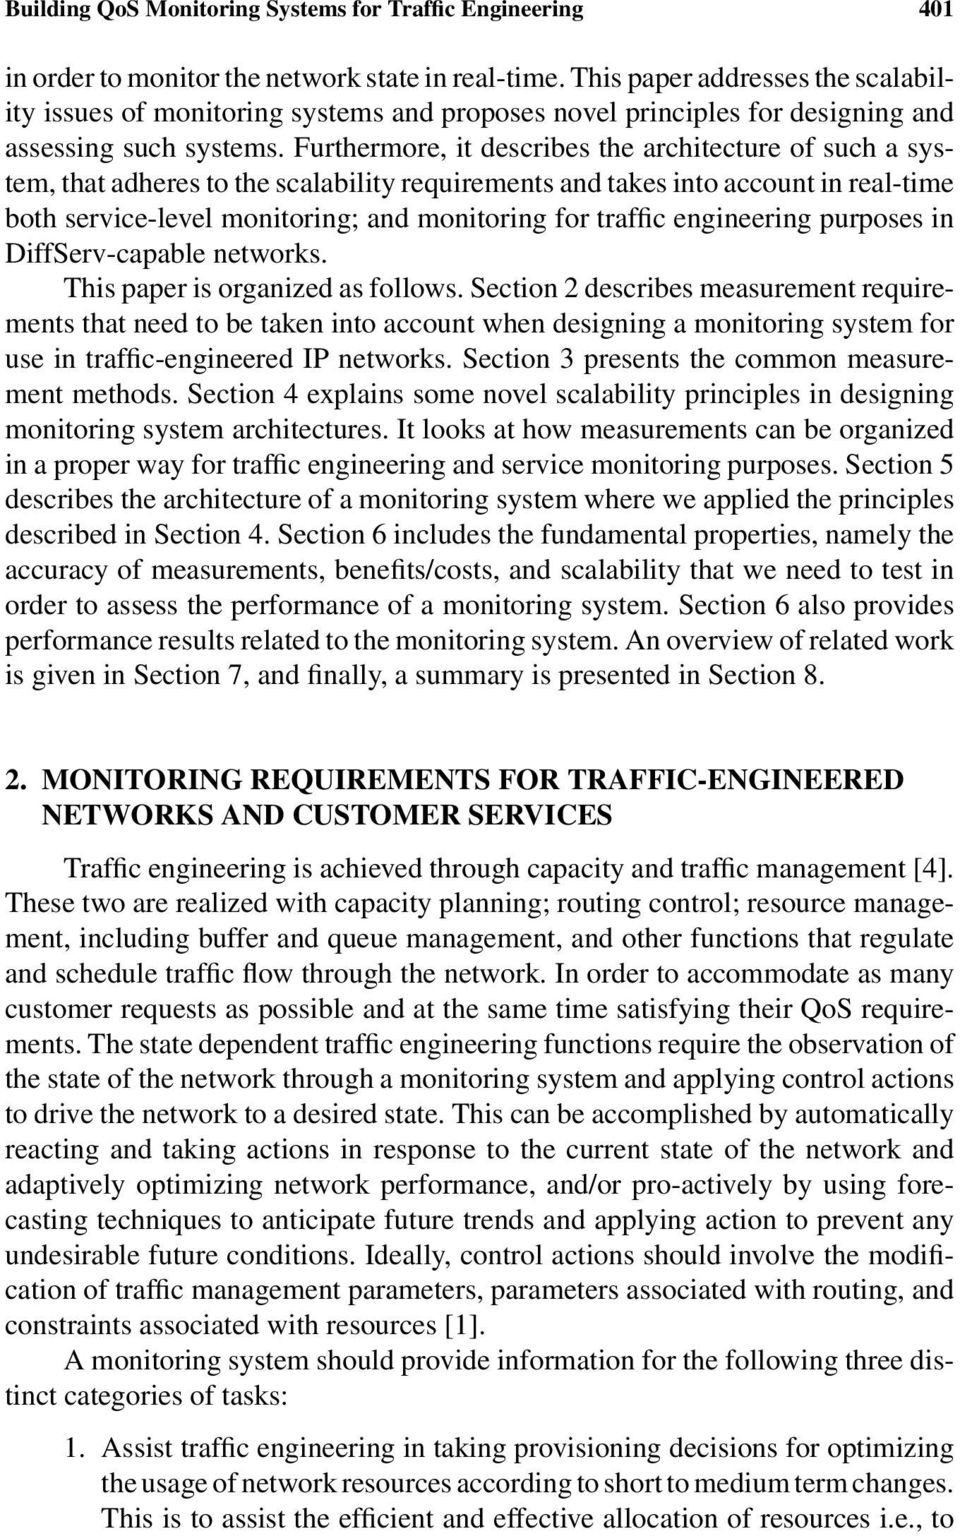 Furthermore, it describes the architecture of such a system, that adheres to the scalability requirements and takes into account in real-time both service-level monitoring; and monitoring for traffic